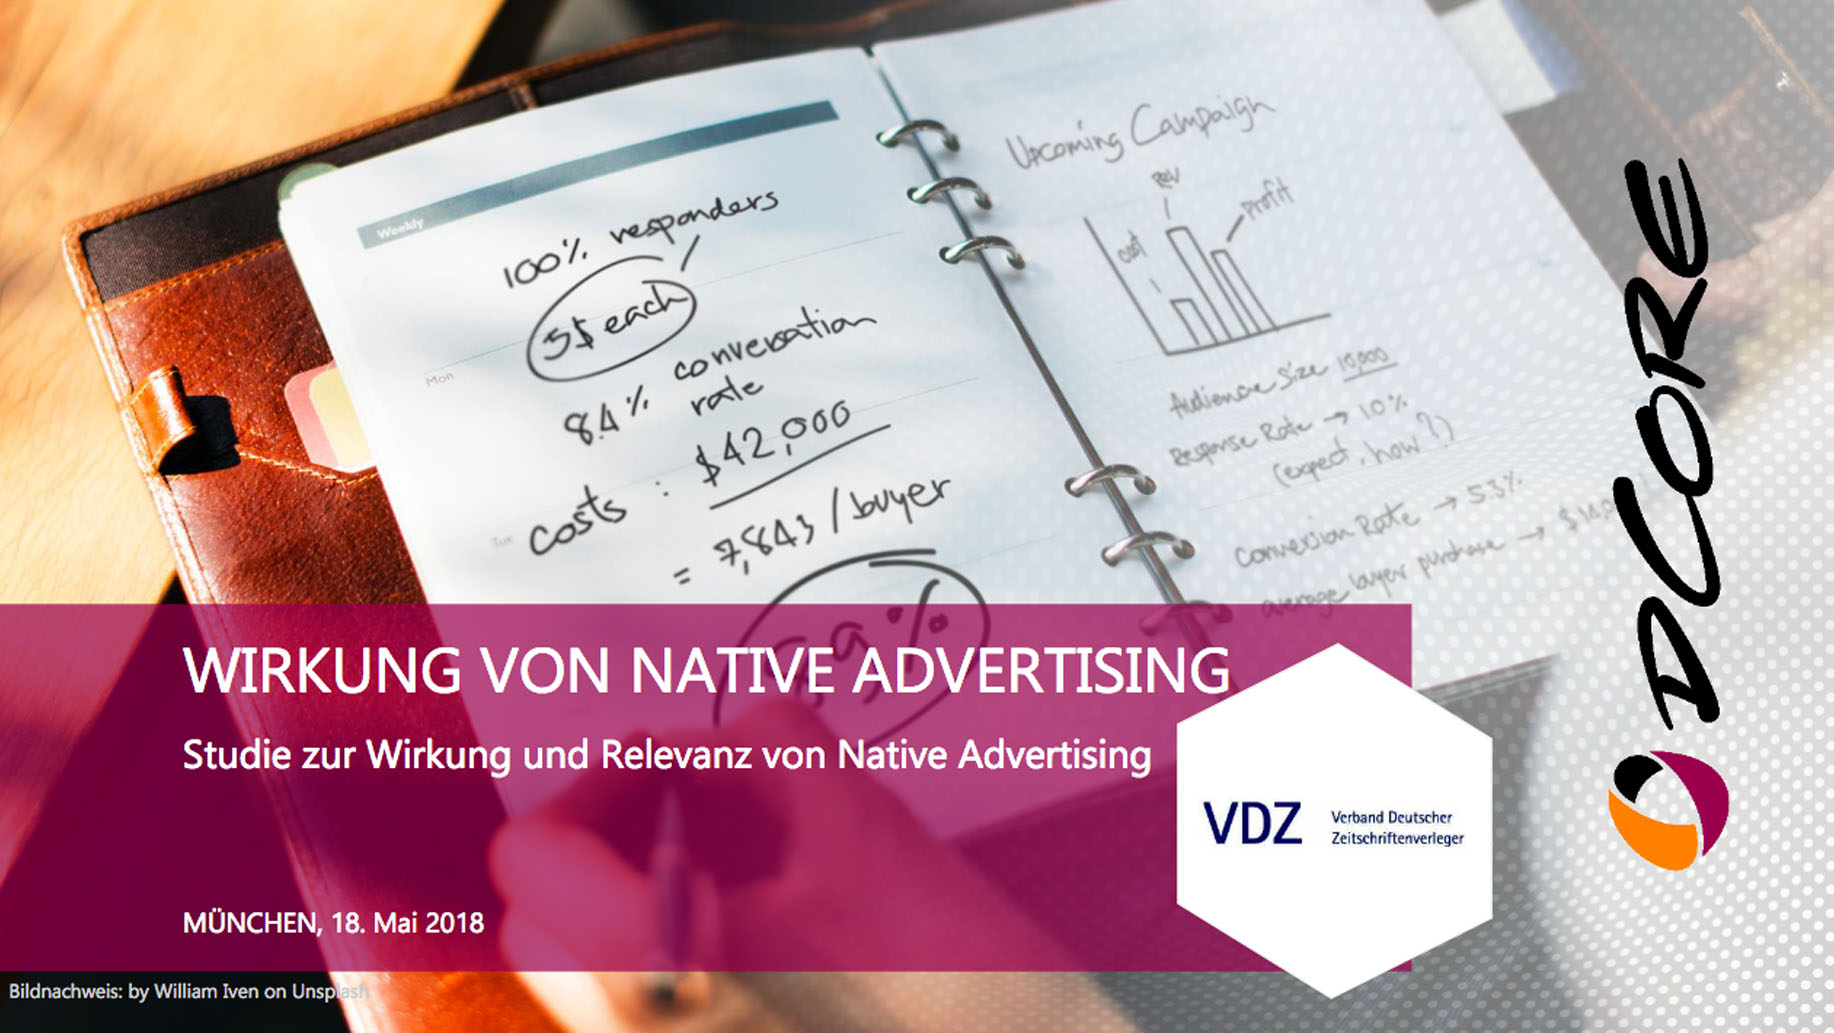 vdz-wirkung-von-native-advertising-1